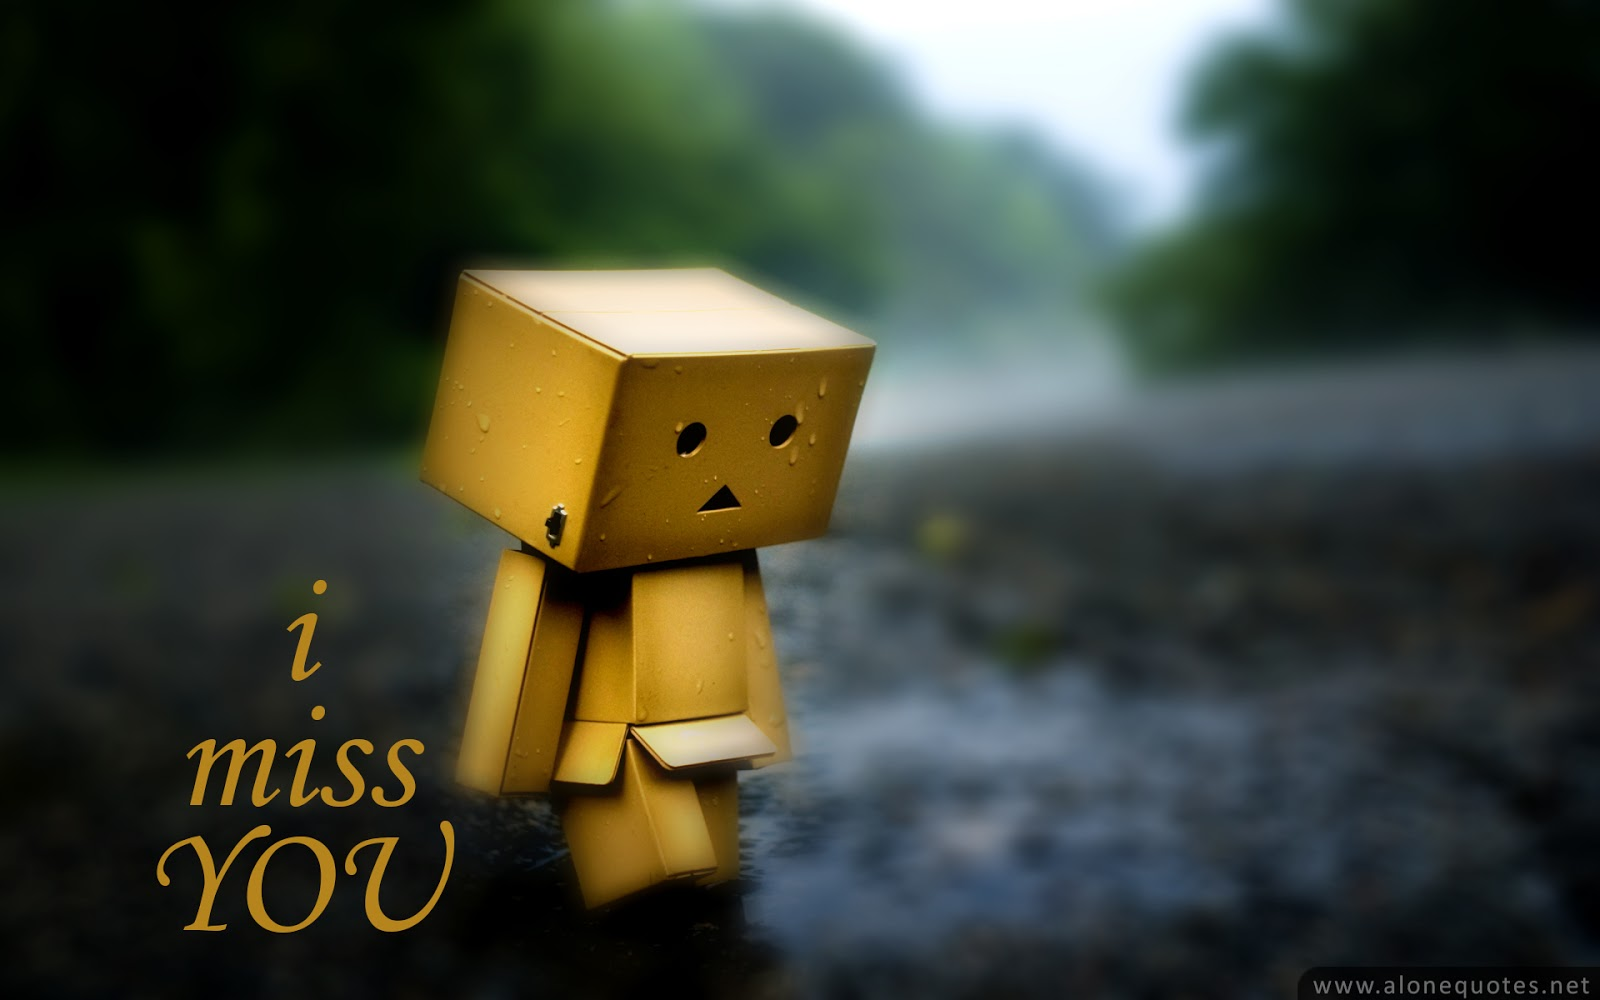 sad alone wallpapers saying I miss you   hd quality 1600x1000